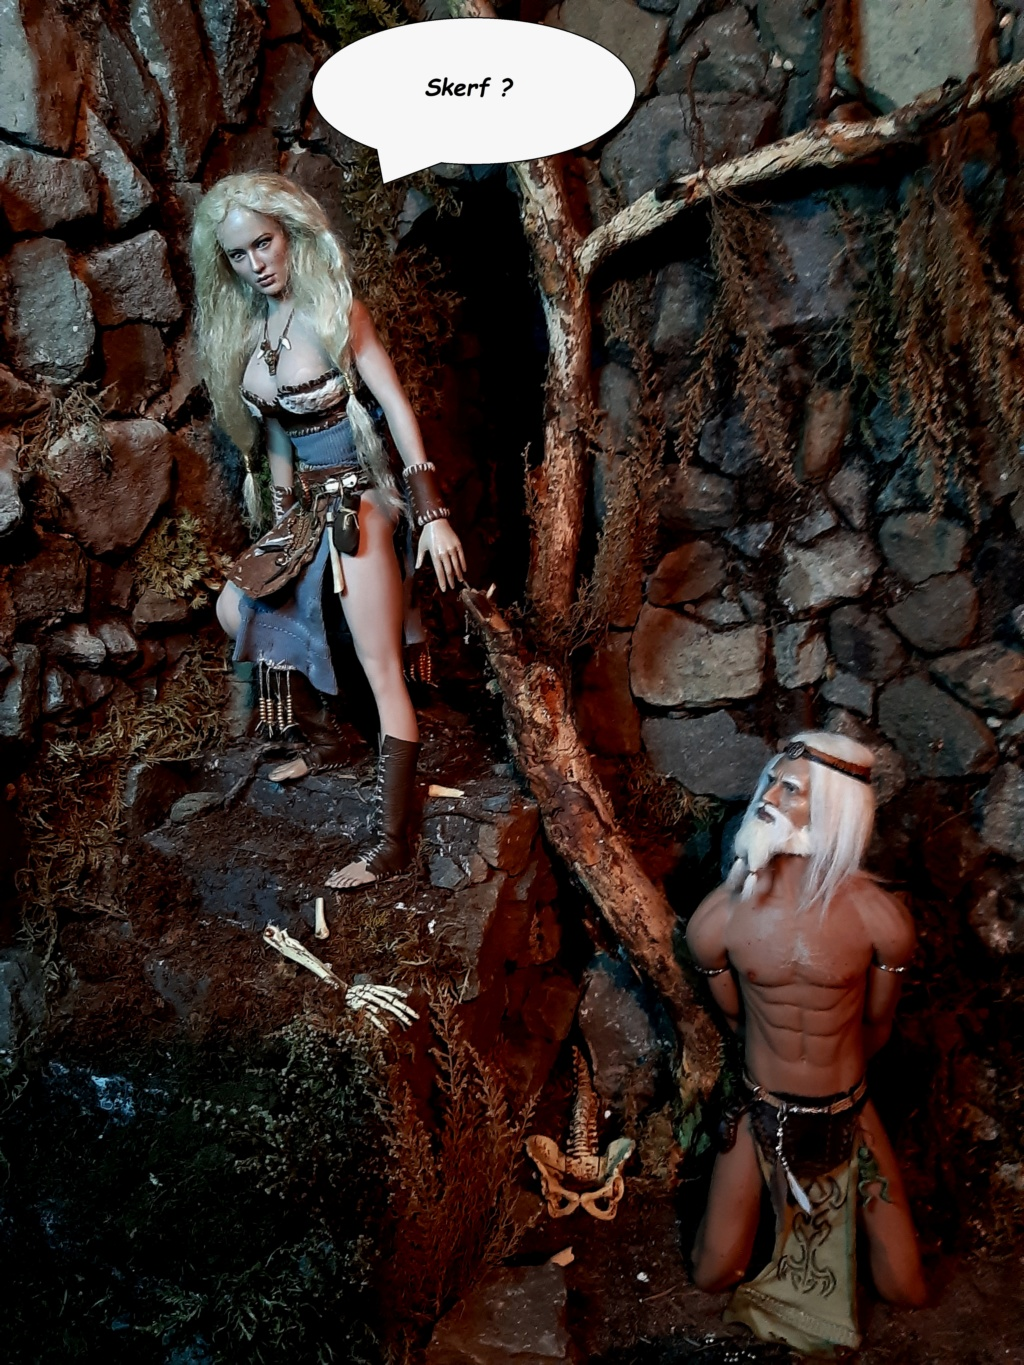 Troll Cave Chapter One and Two: The Escape of Skerf (Blood, violence, sexual content) please adults only (updated July 2019) J10